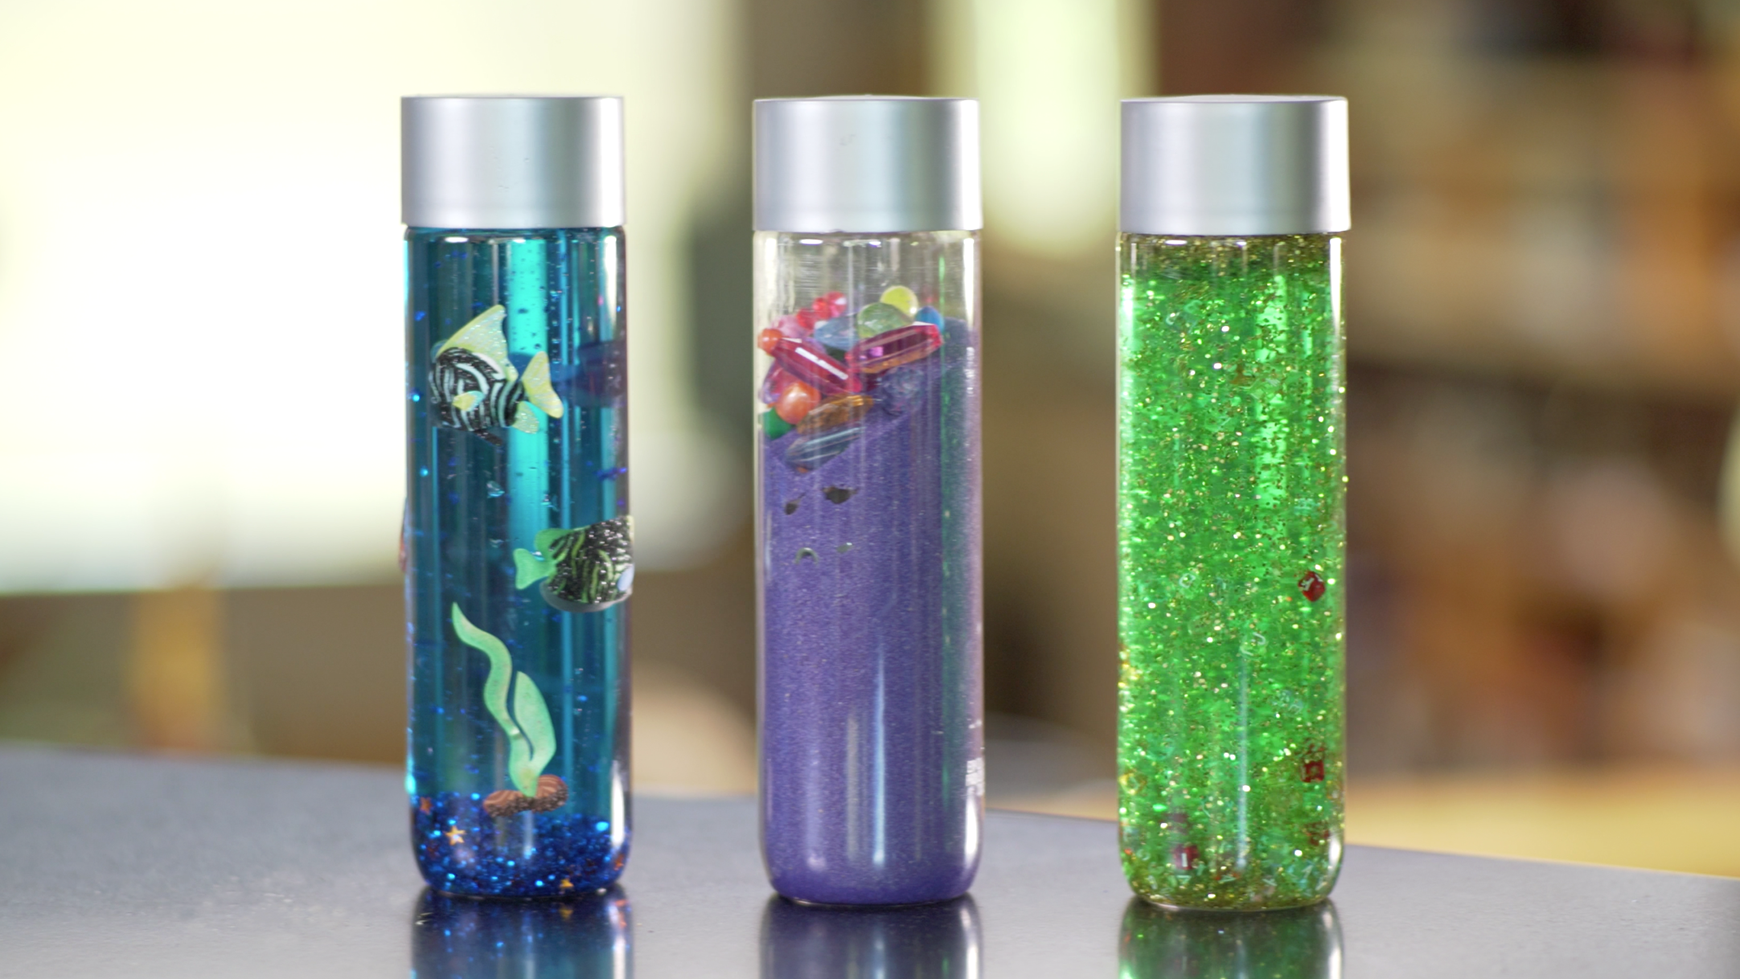 How To Make A Sensory Bottle Understood For Learning And Thinking Differences